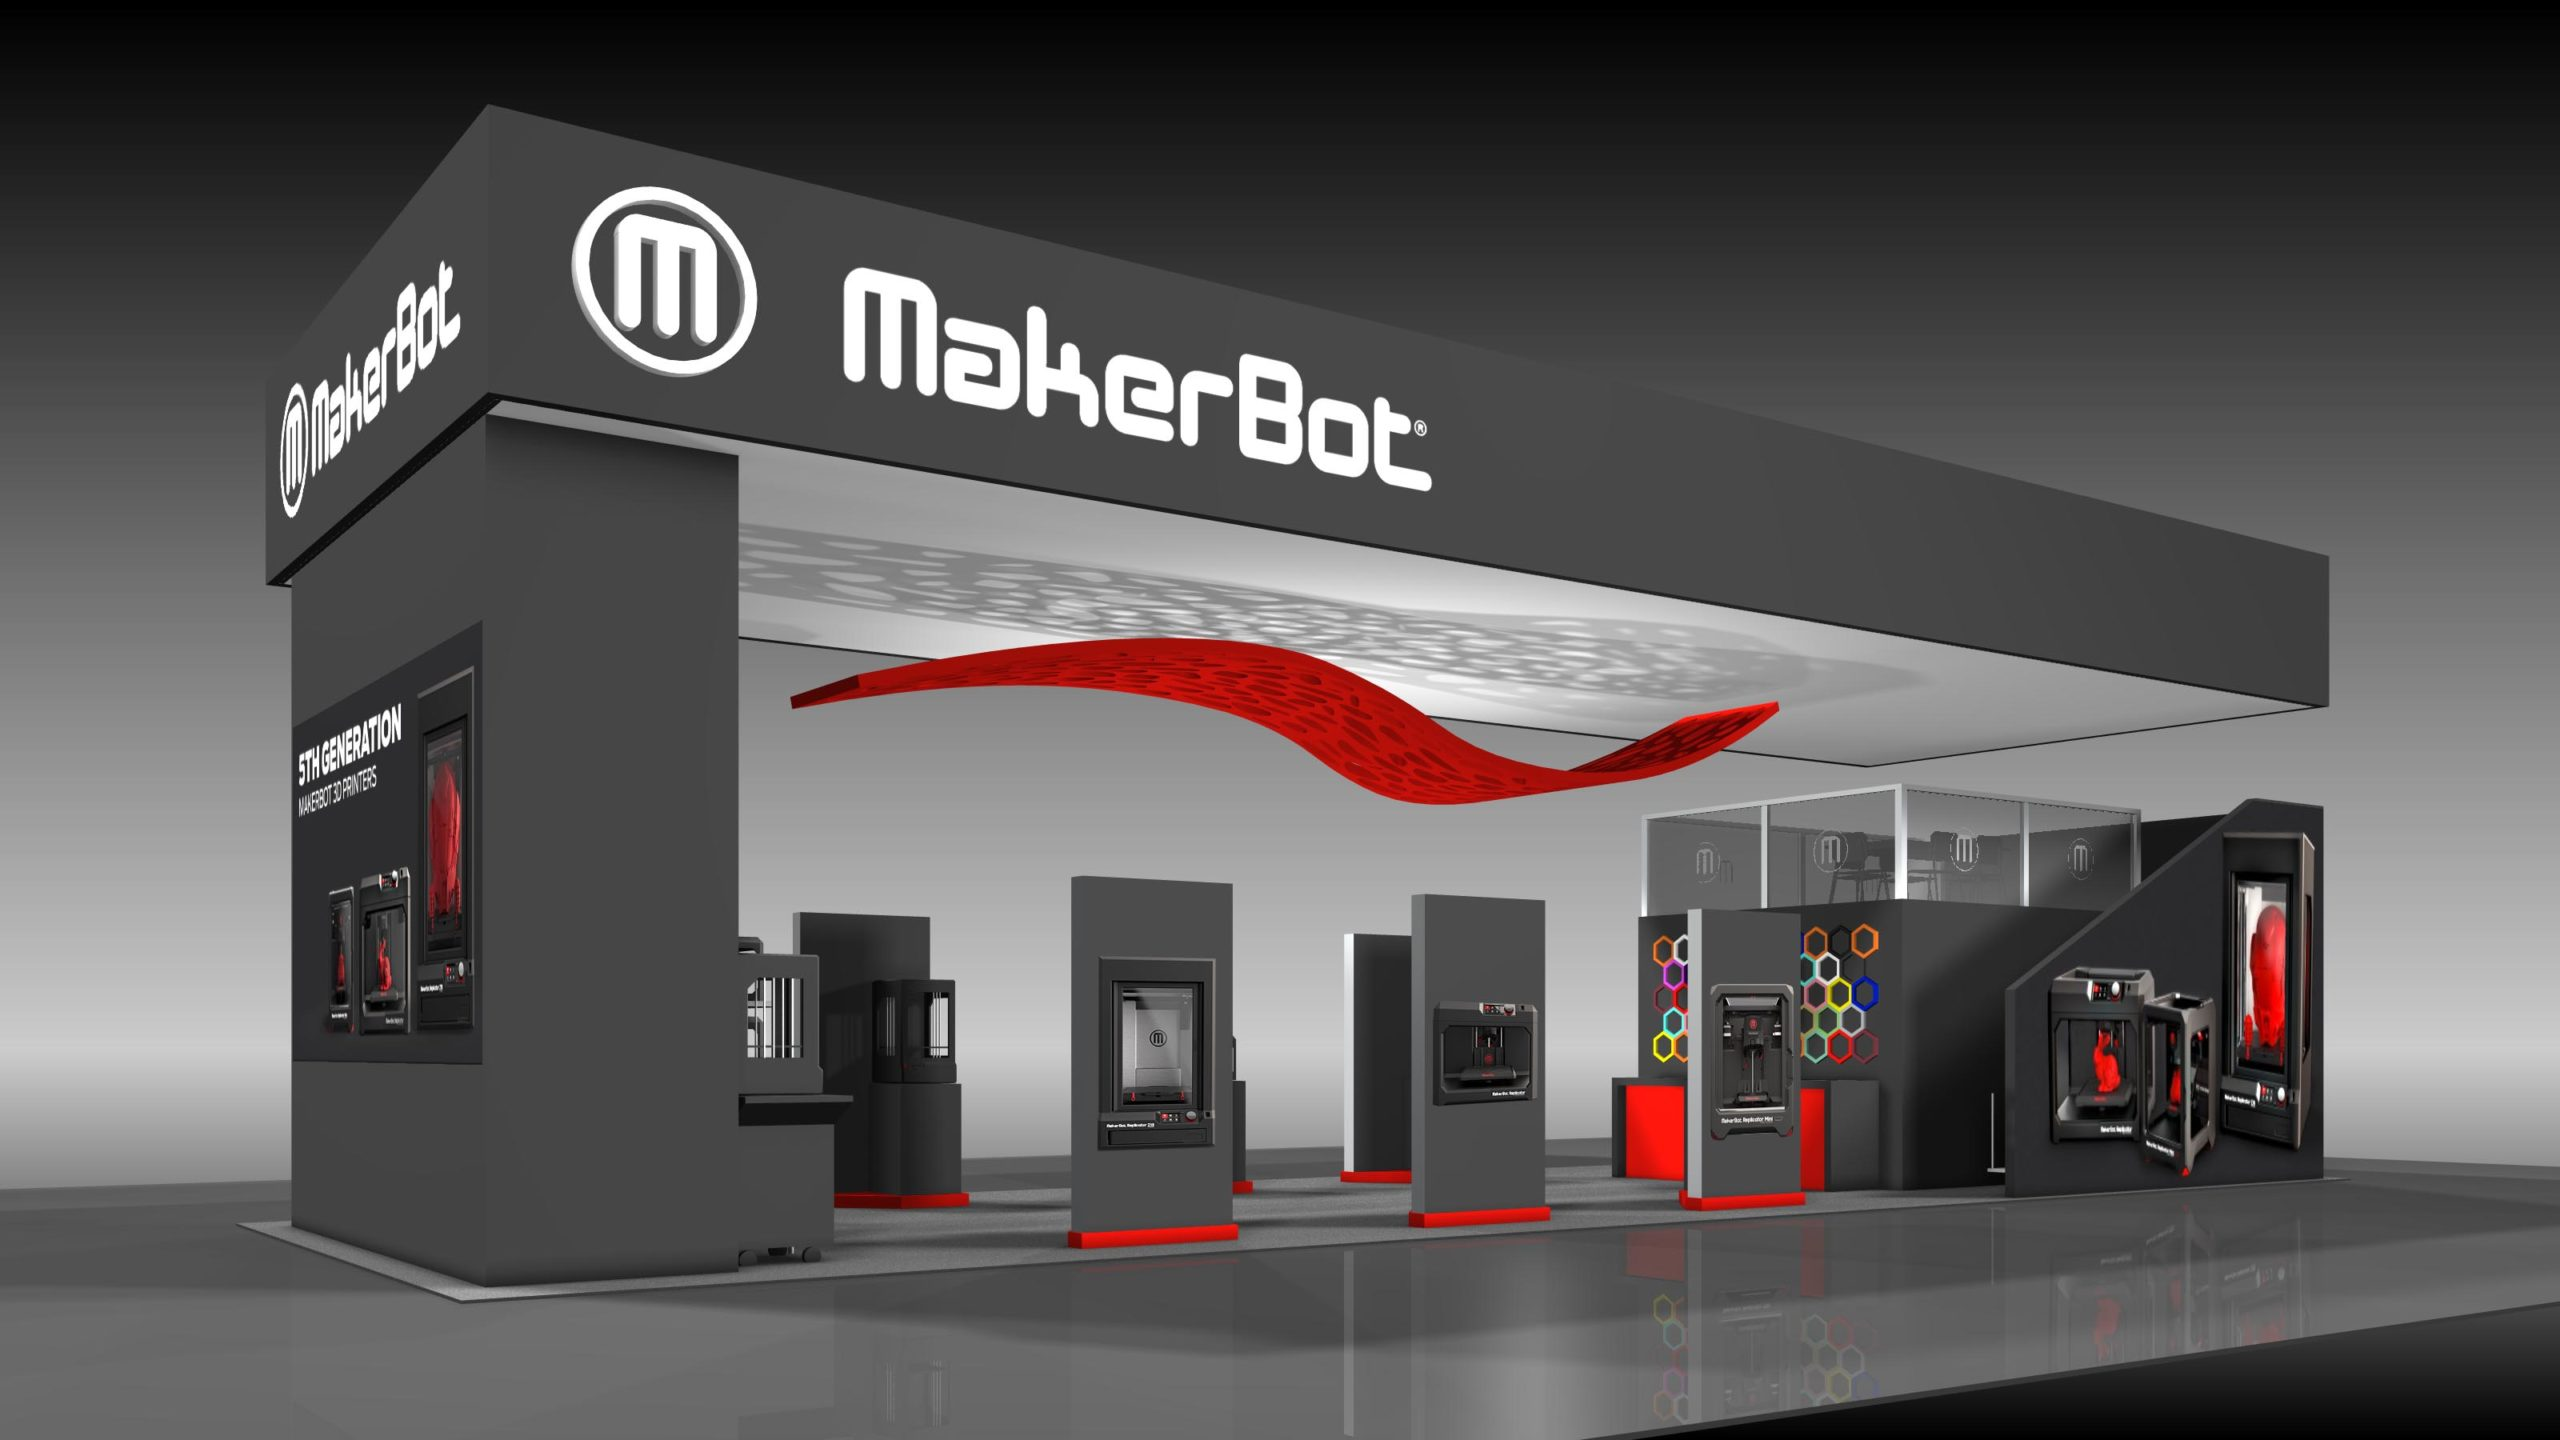 makerbot-view 127